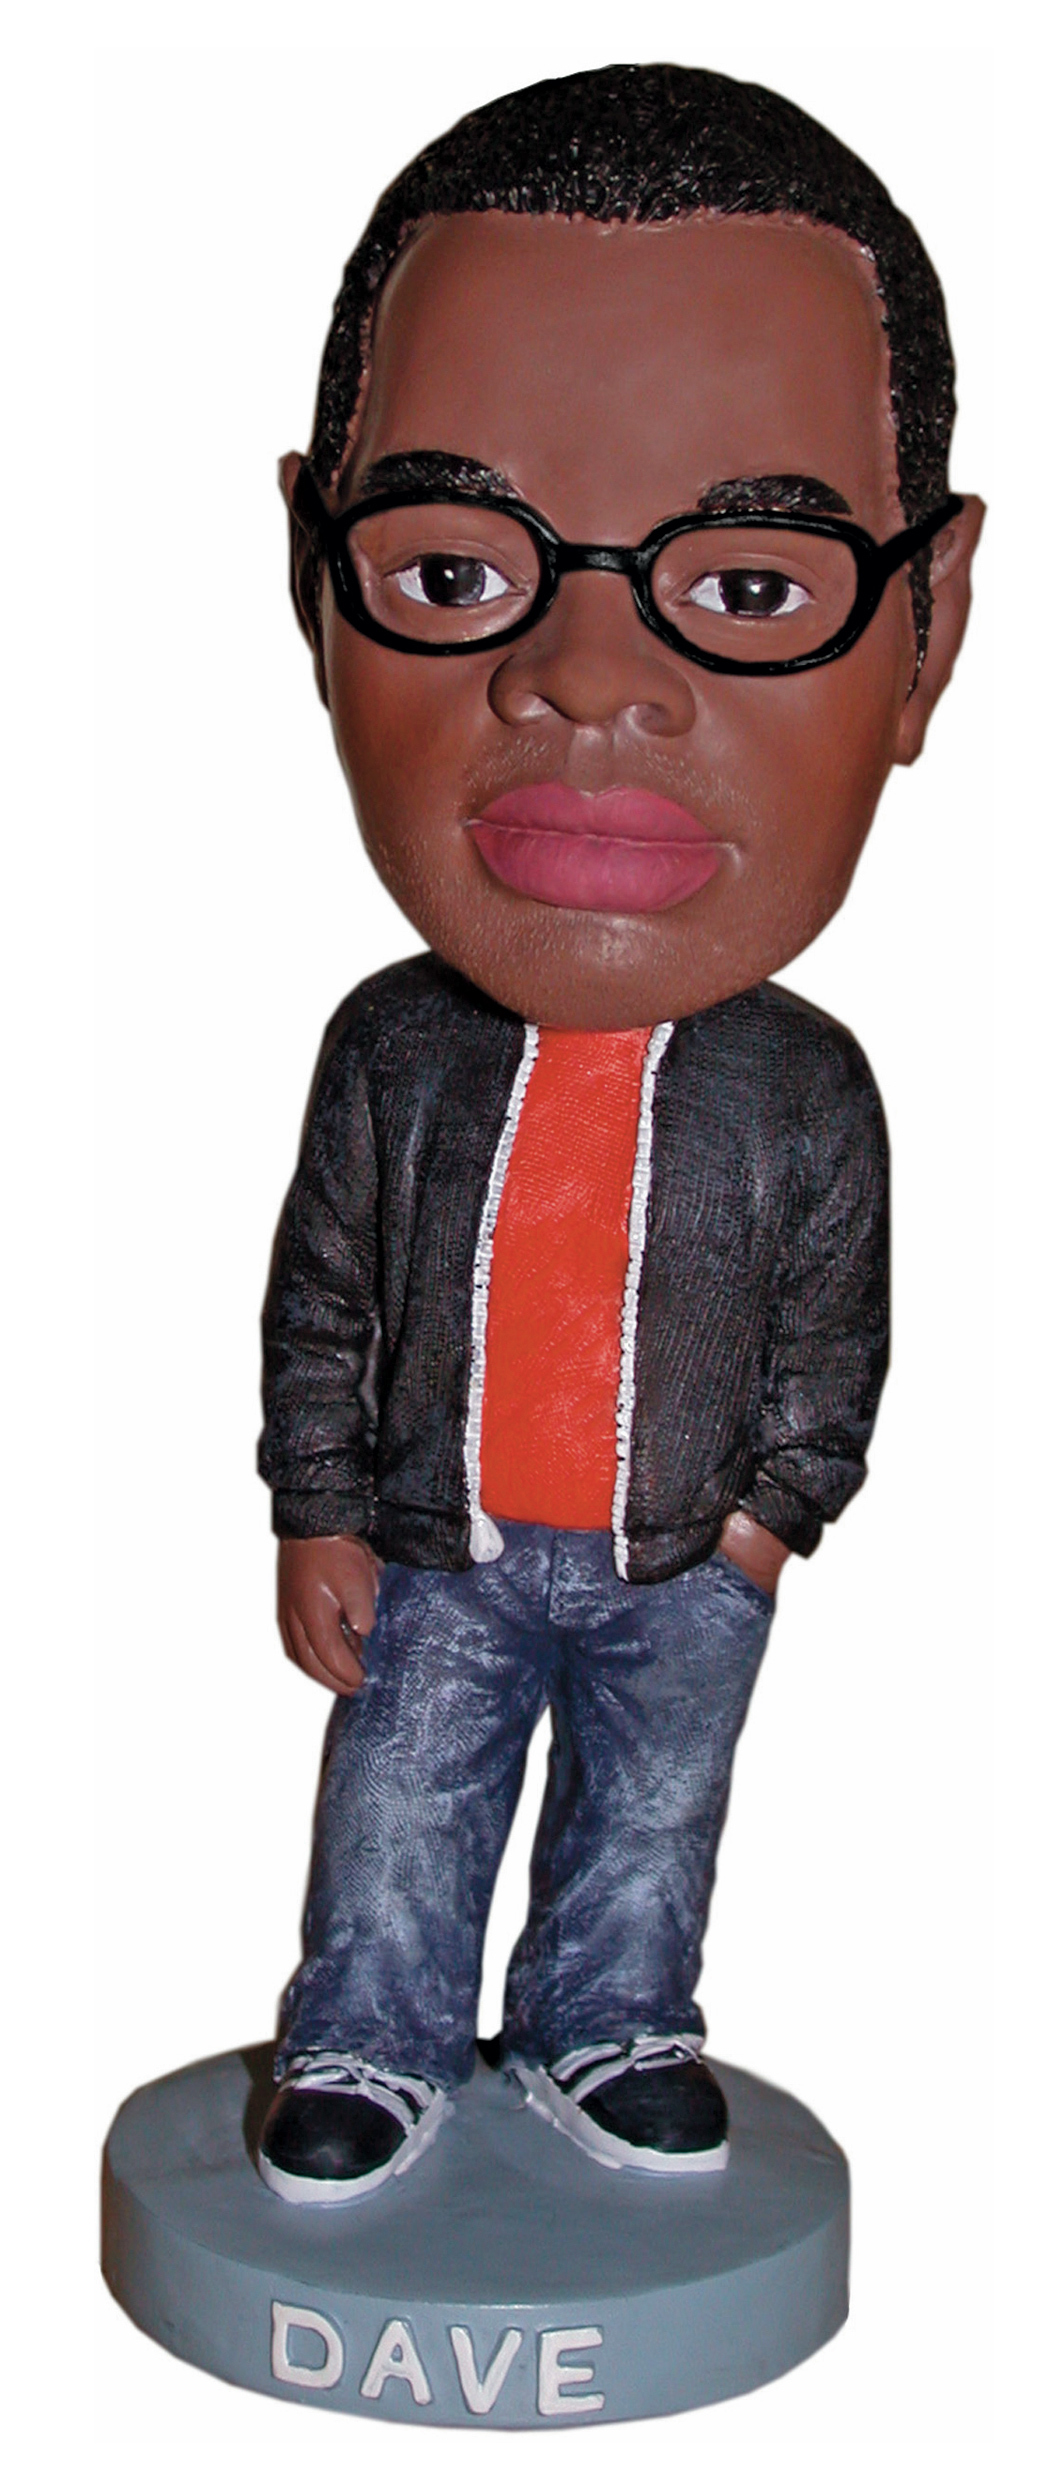 Bobblehead from Dave McKenzie's While Supplies Last, 2003, performance, poly-resin figures, 7 × 2 1⁄2 × 2 1⁄2